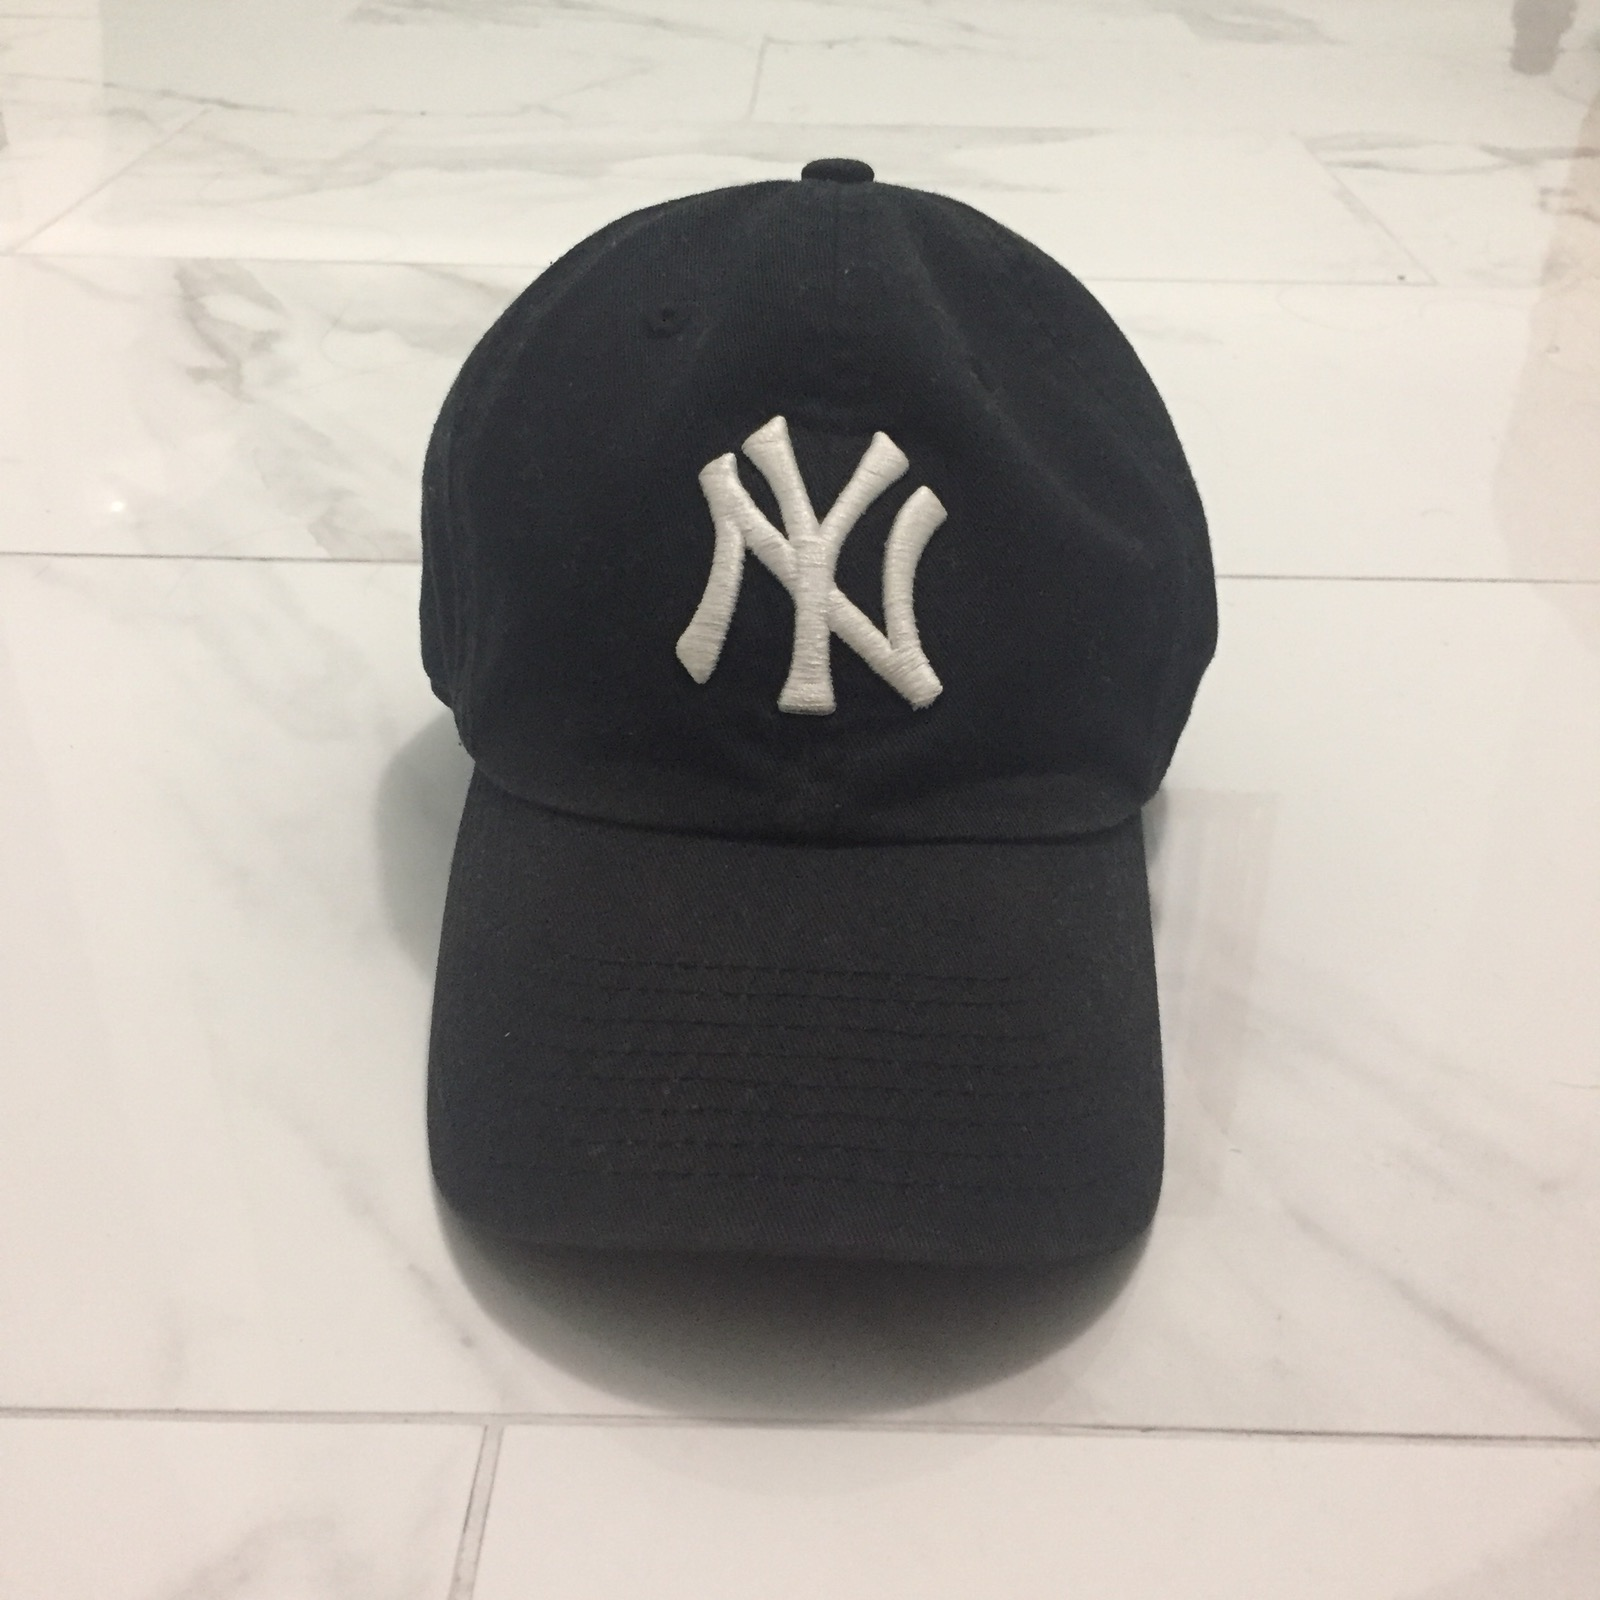 Lids Blue Yankees Adjustable Dad Cap Size one size - Hats for Sale ... f8c56be8ff8